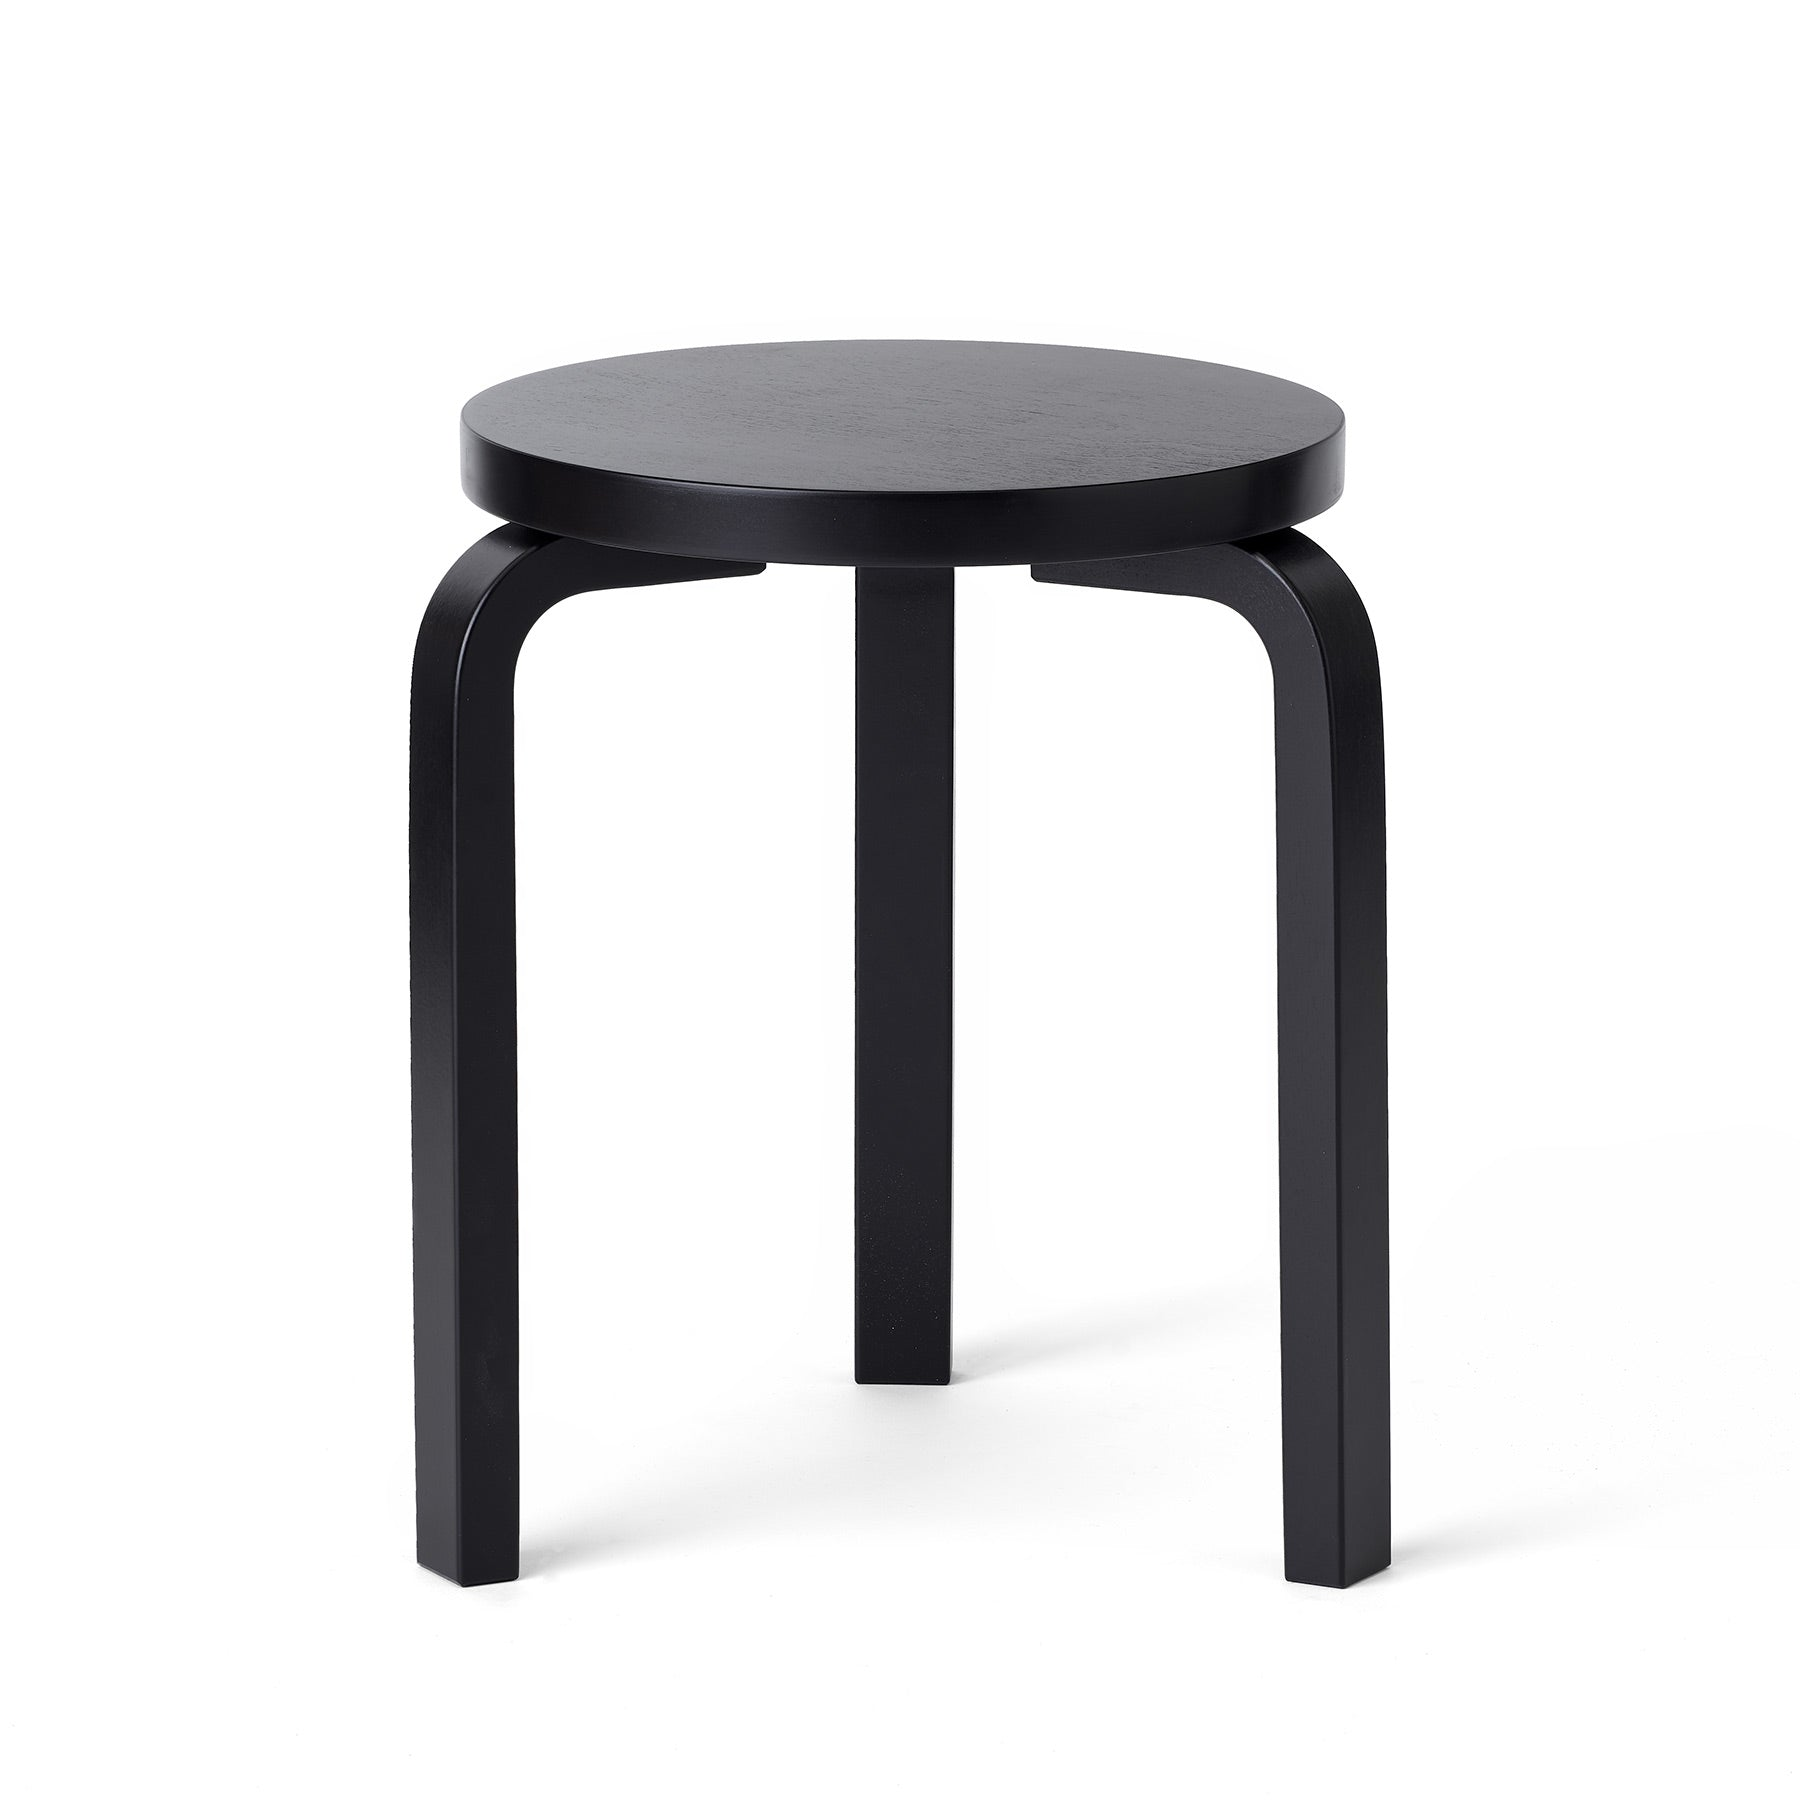 Stool 60 in Black Zoom Image 1